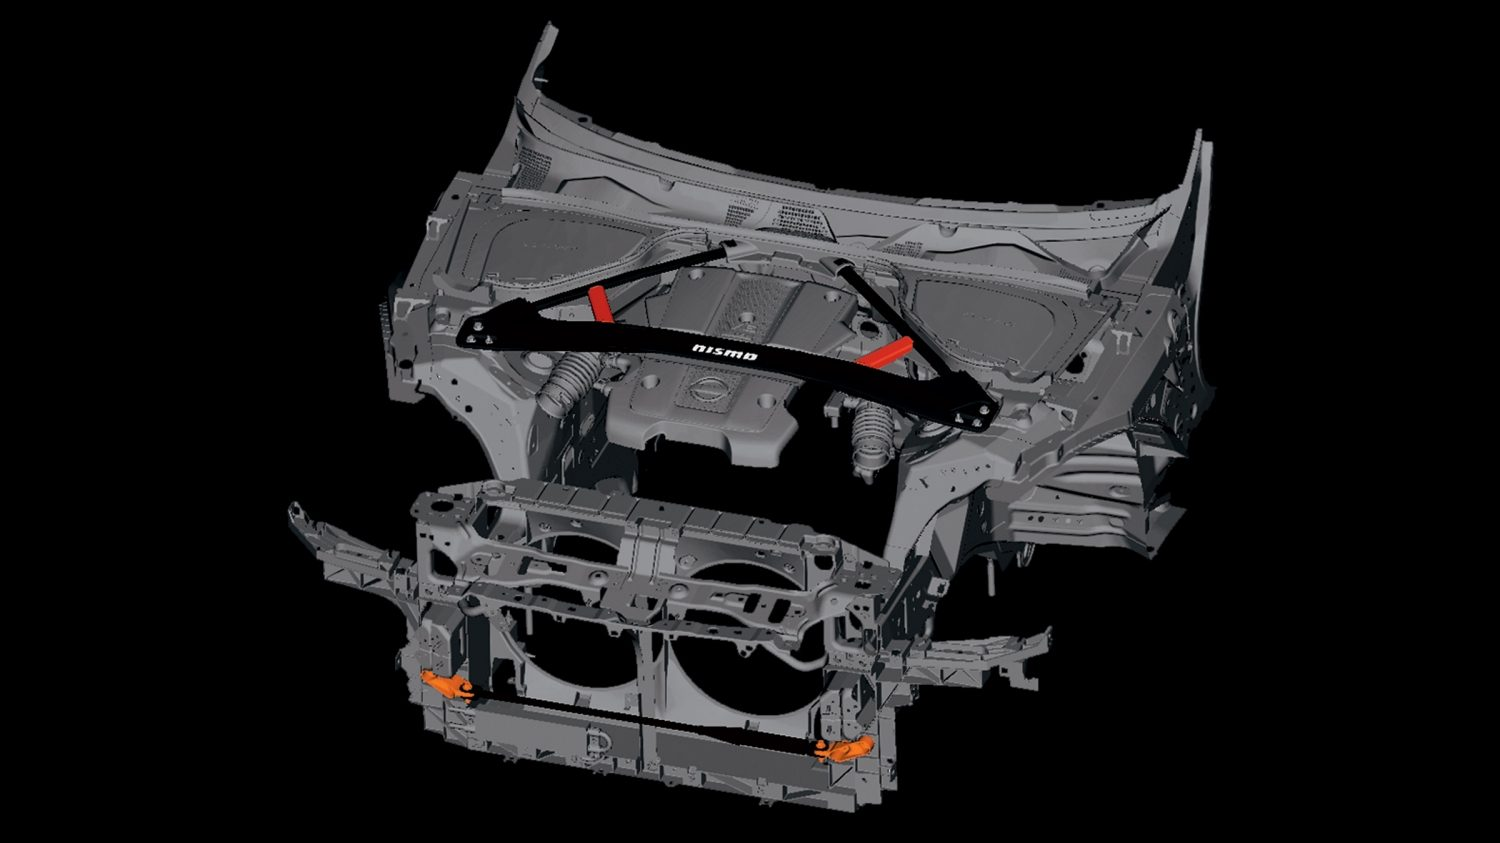 Nissan 370Z Nismo chassis with body dampers